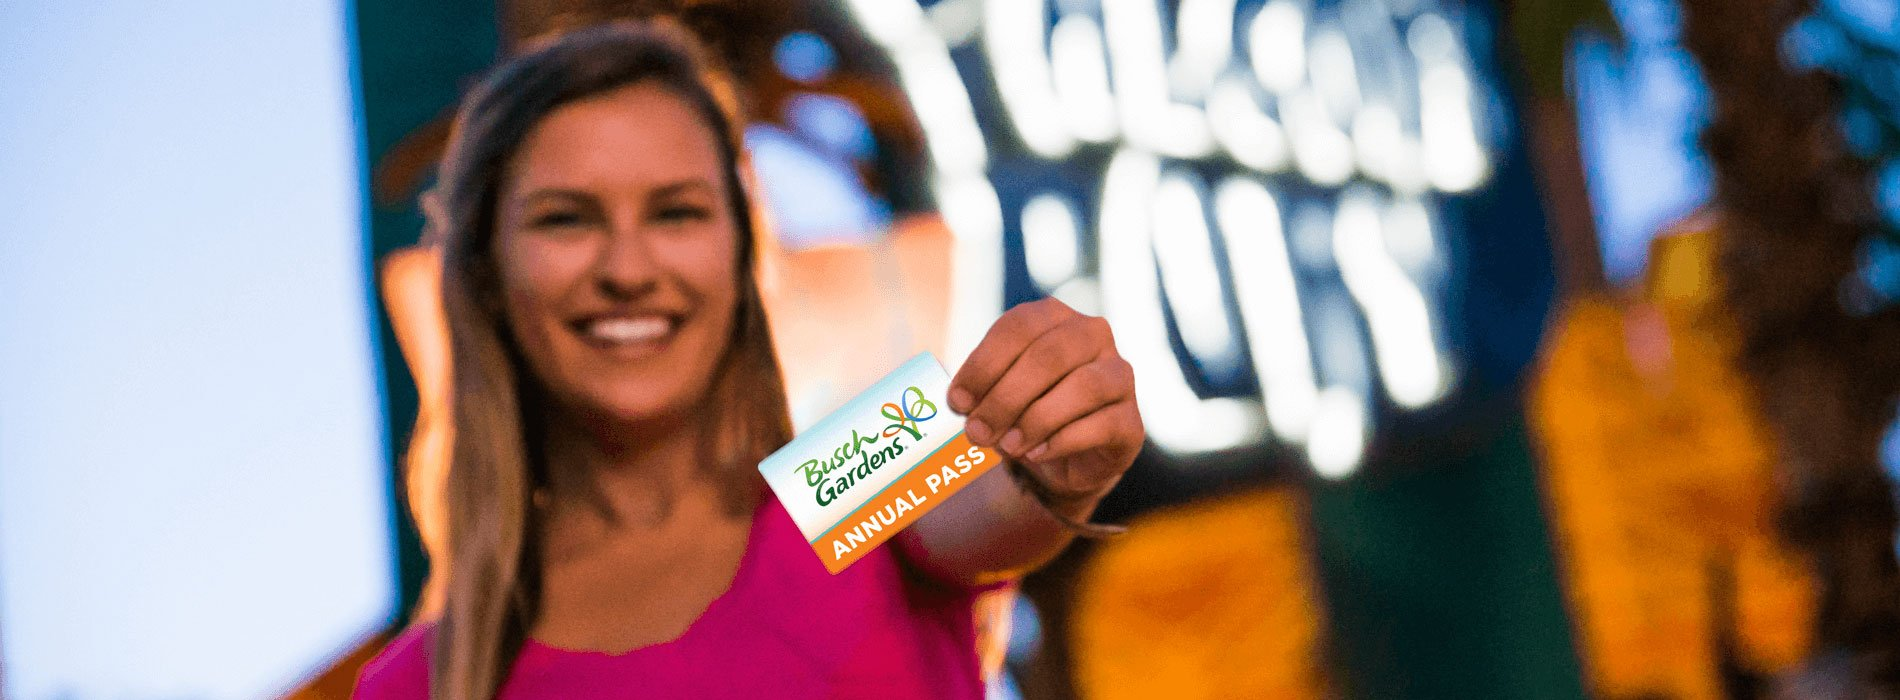 Woman holding up a Busch Gardens Tampa Bay Annual Pass